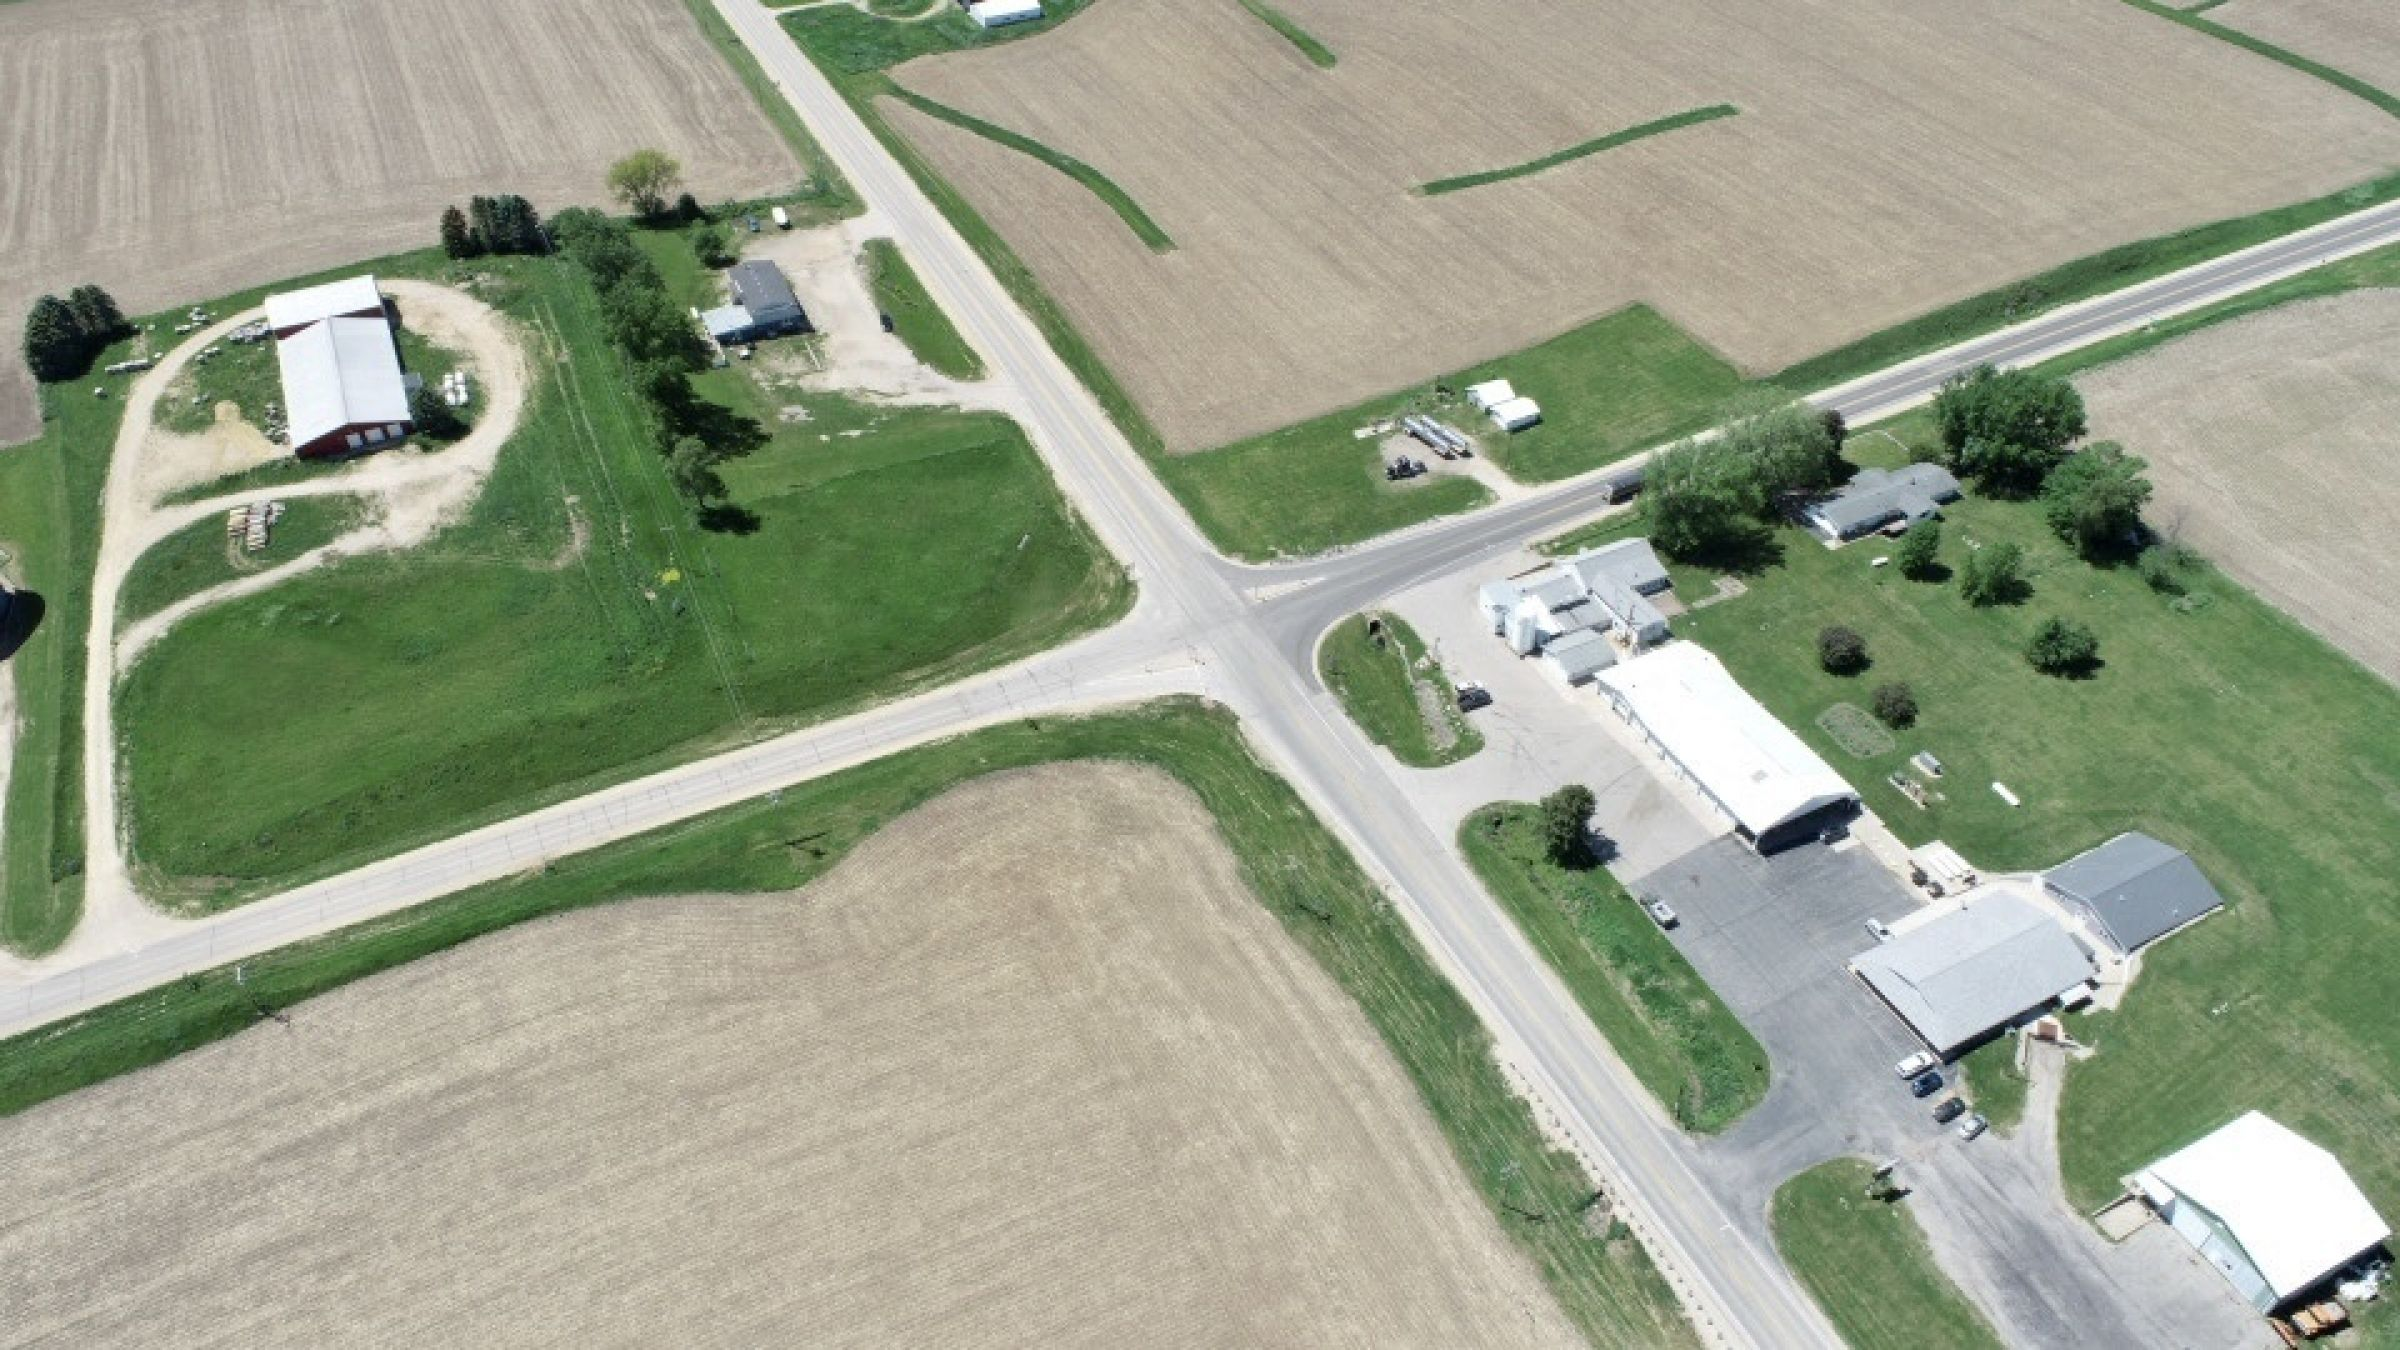 land-commercial-lafayette-county-wisconsin-1-acres-listing-number-15560-7-2021-05-28-185524.jpg